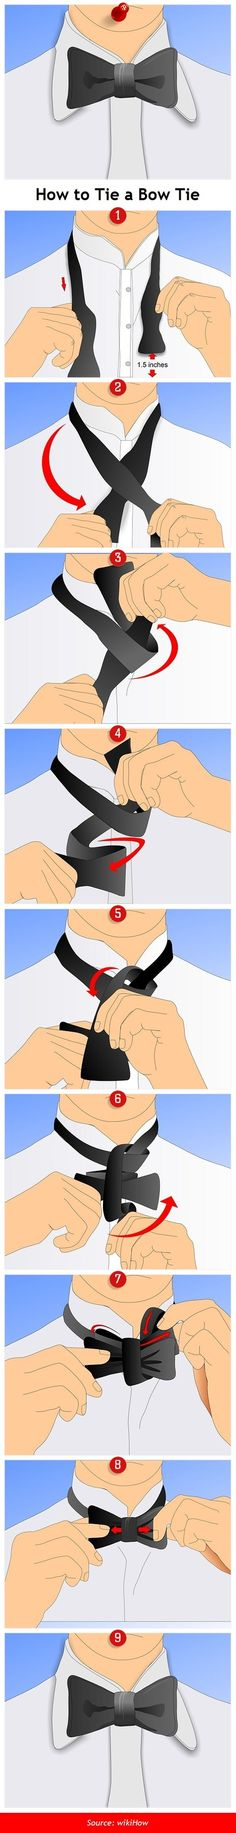 How to Tie a Bow Tie, from wikiHow.com! #style #clothing #men #fashion